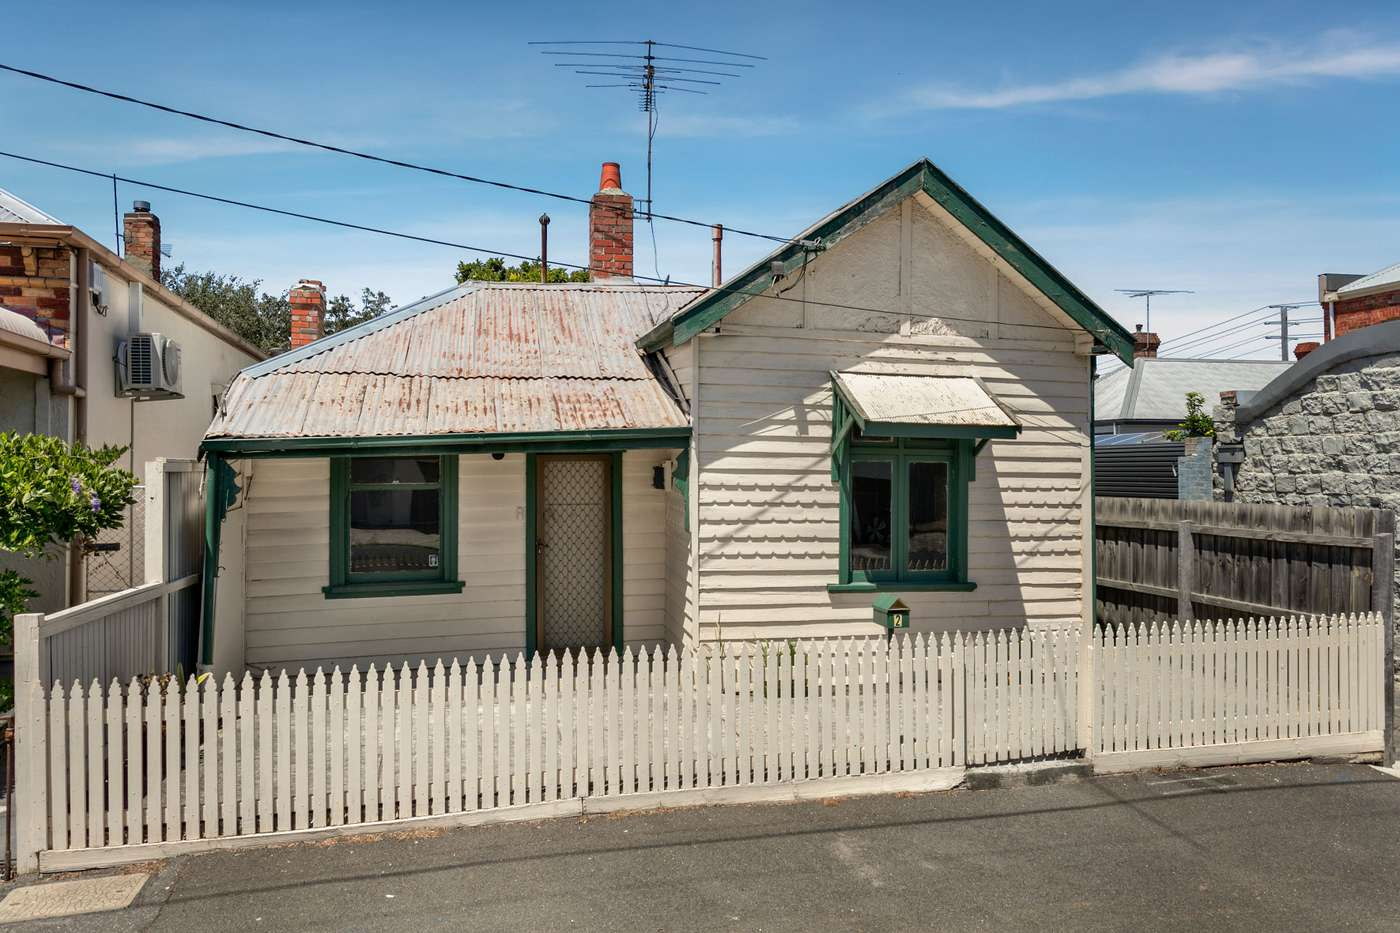 Main view of Homely house listing, 2 Leithead Street, Brunswick, VIC 3056